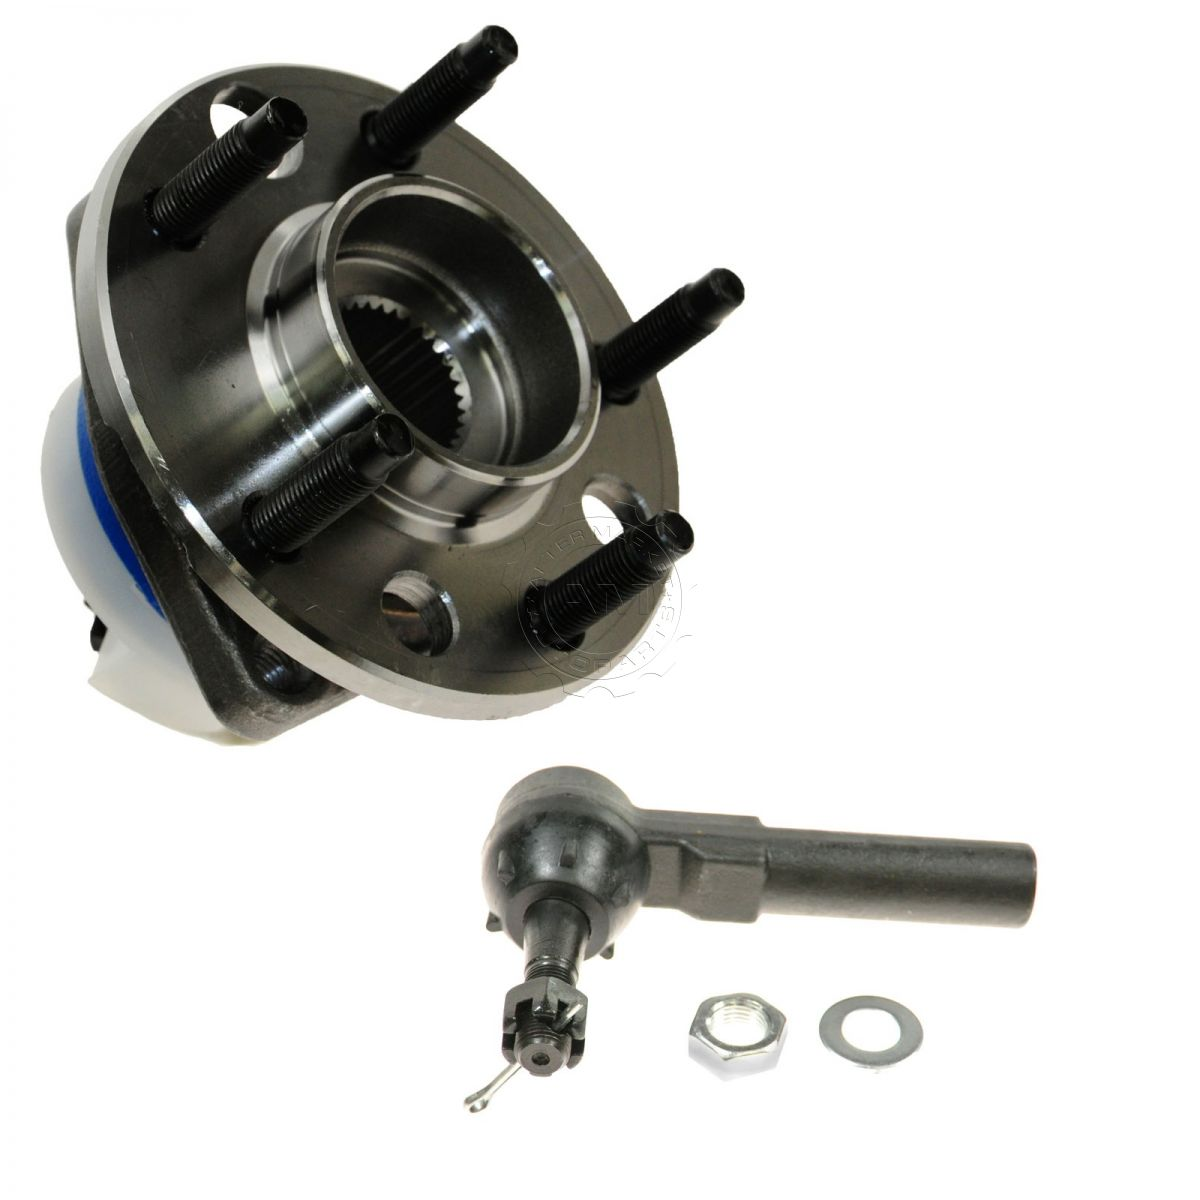 2003 Buick Century Wheel Bearing: Wheel Hub & Outer Tie Rod Kit Front LH Or RH For Buick